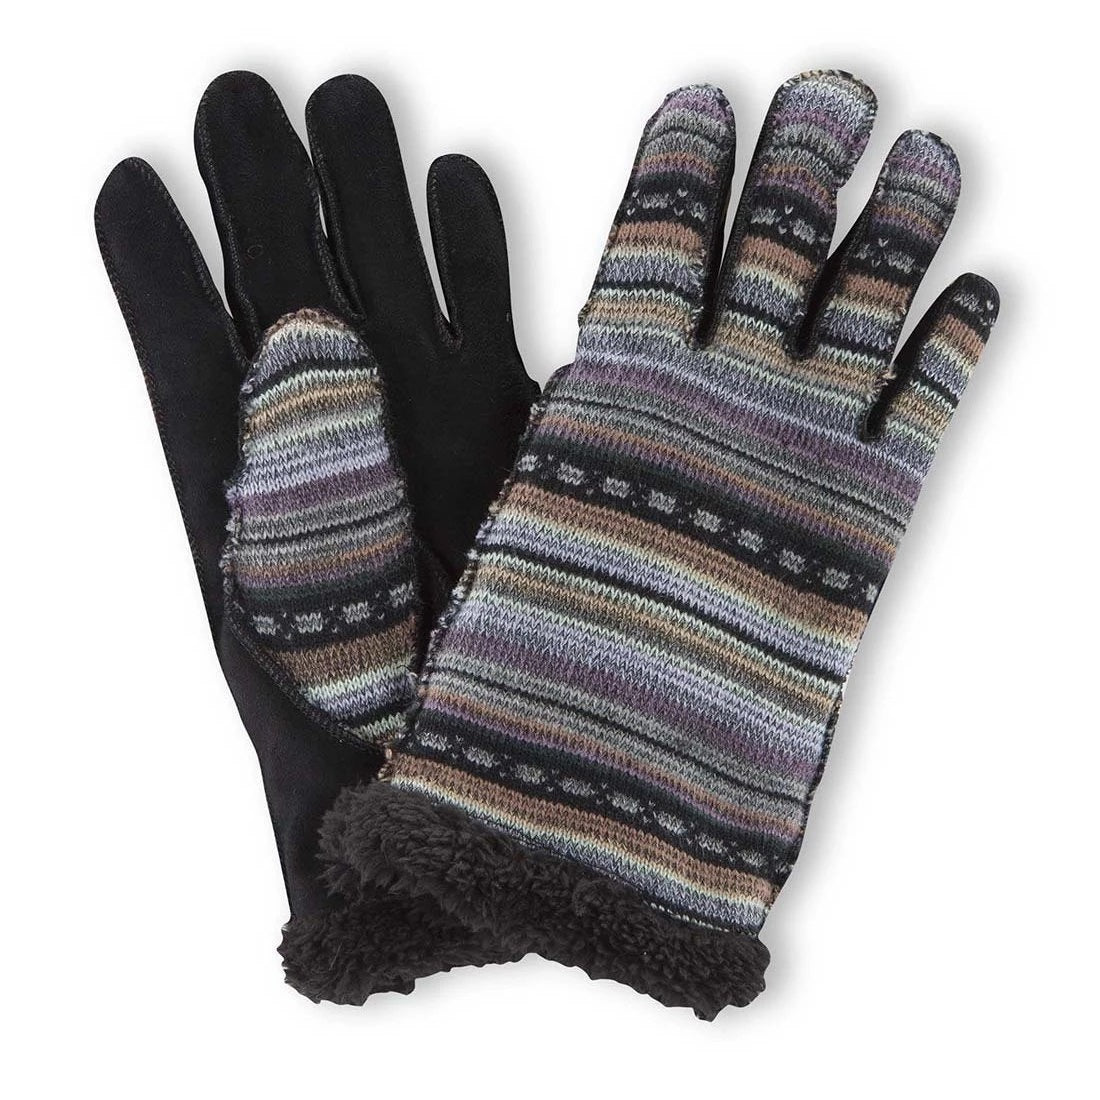 Penny Lane Gloves - Provisions, LLC